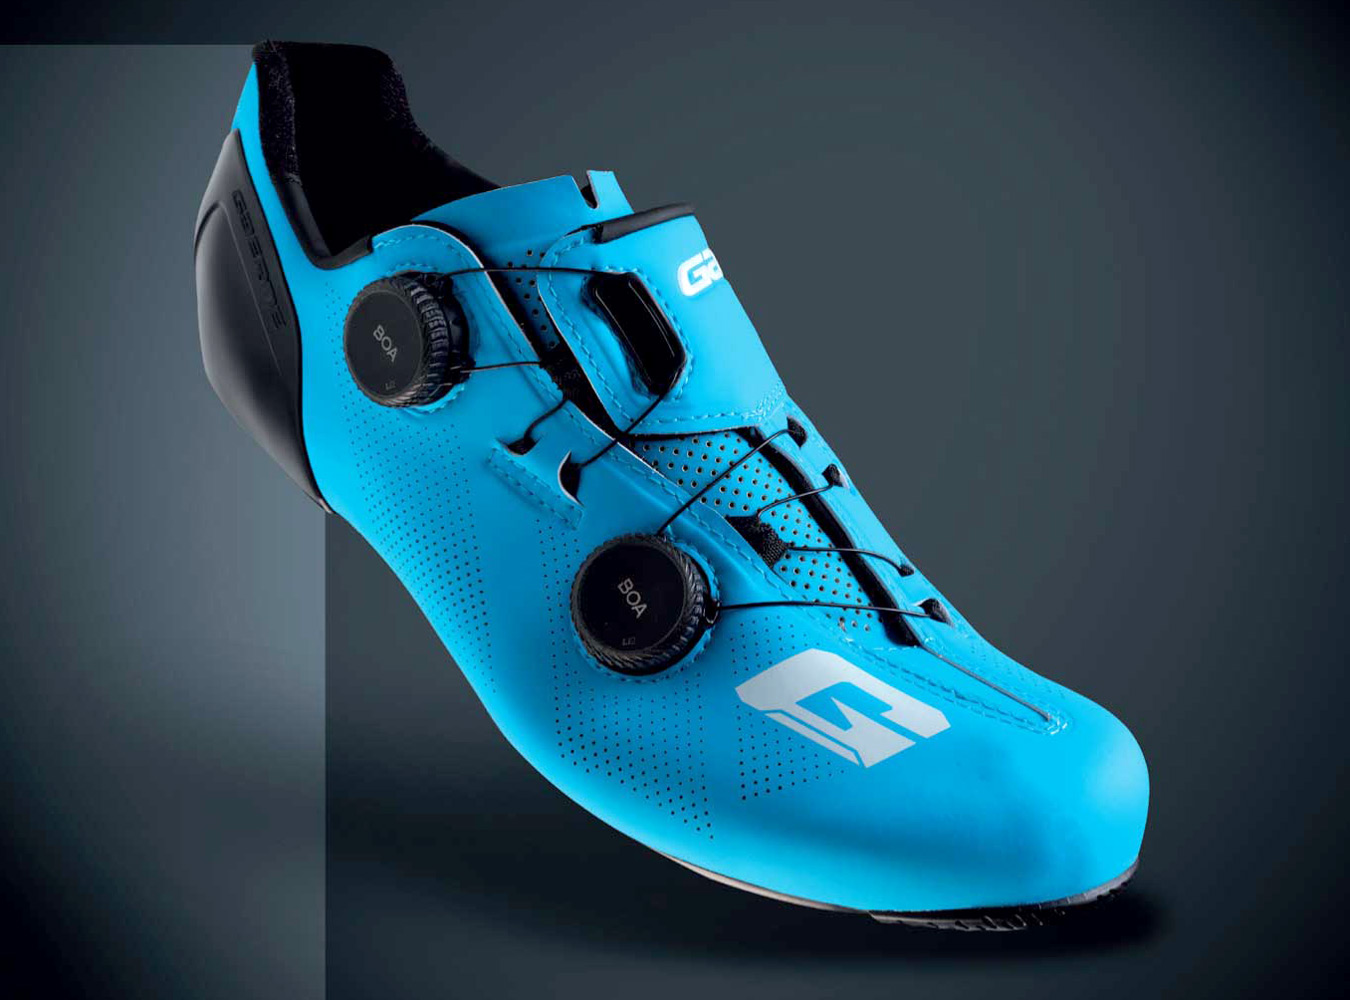 Gaerne G.STL road shoes, top-tier made-in-Italy performance carbon road race bike shoe, angled